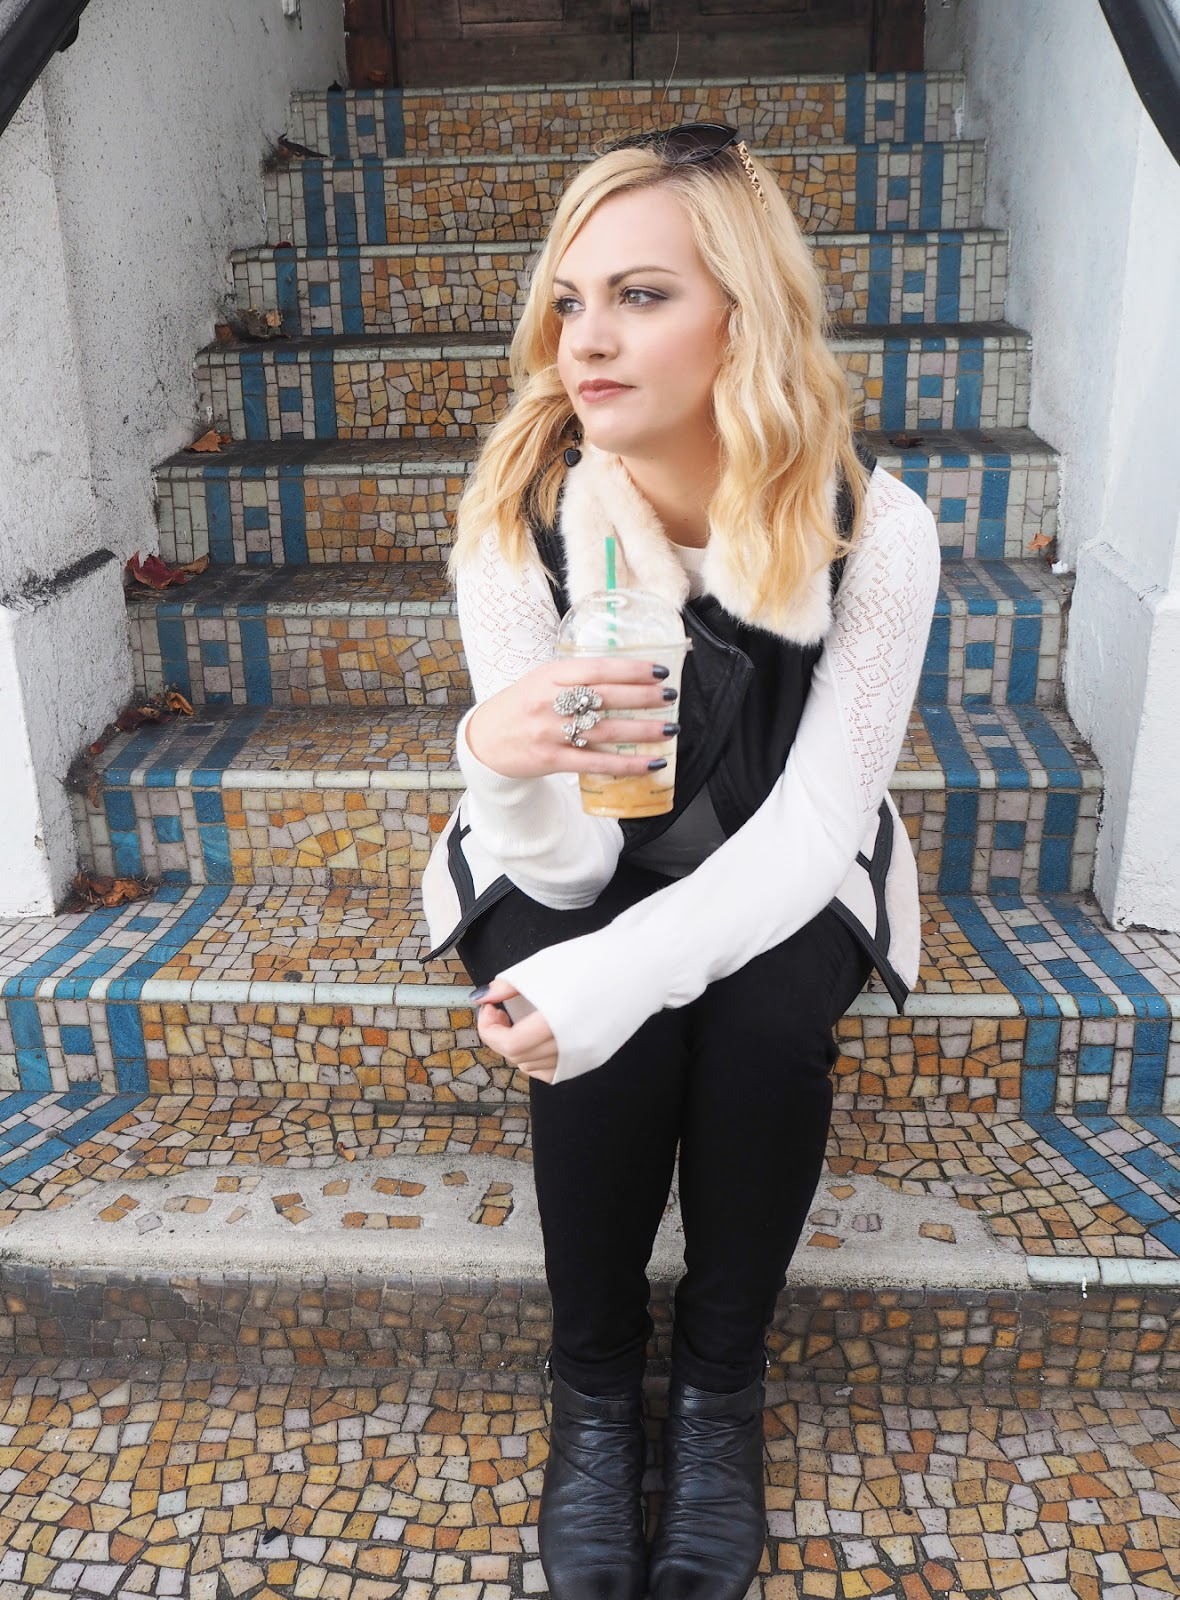 Monochrome Layering, Katie Kirk Loves, Outfit Ideas, Monochrome Fashion, Fashion Layering, Oasis Fashion, Fashion Blogger, UK Fashion Blogger, Outfit Of The Day, Style Blogger, Outfit Photoshoot, UK Blogger, UK Fashion Blogger